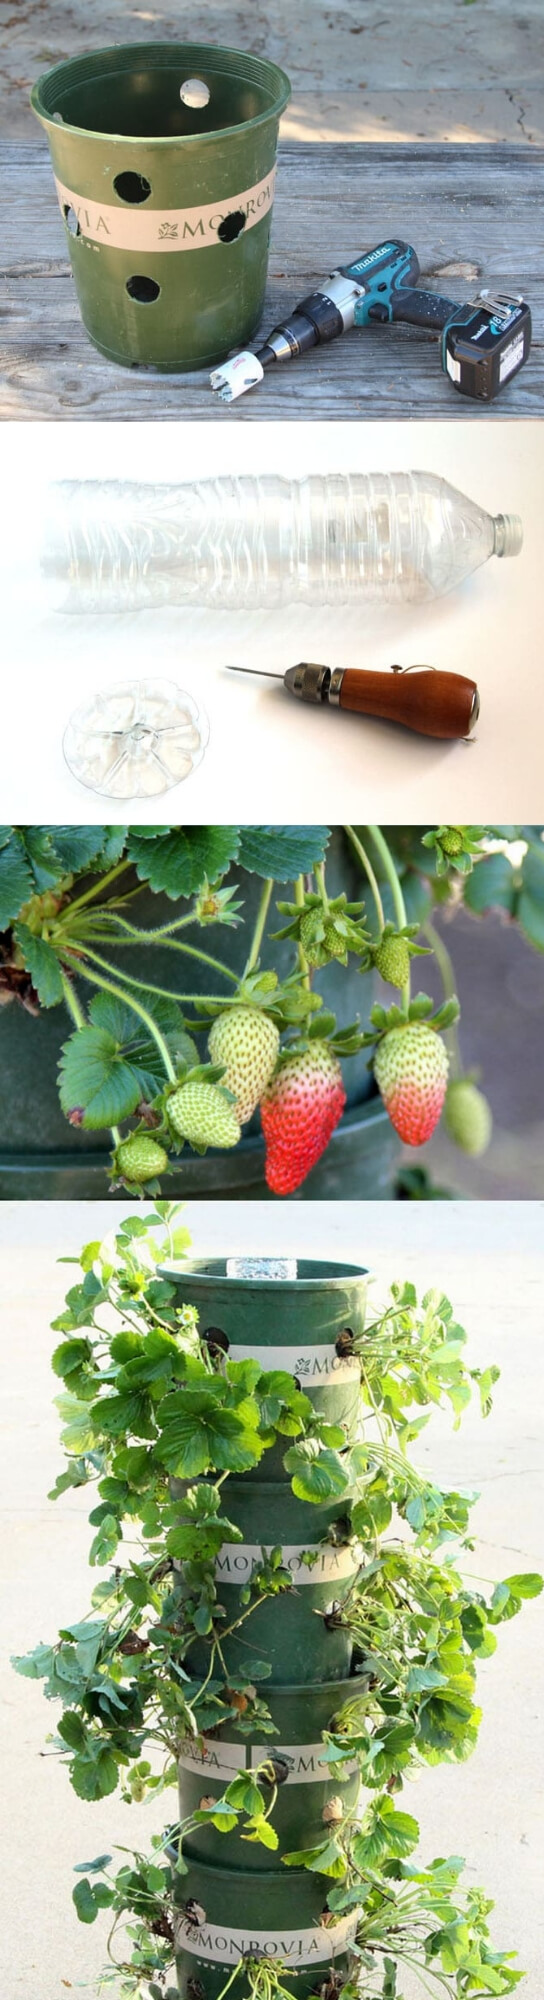 DIY Strawberry Tower With Reservoir